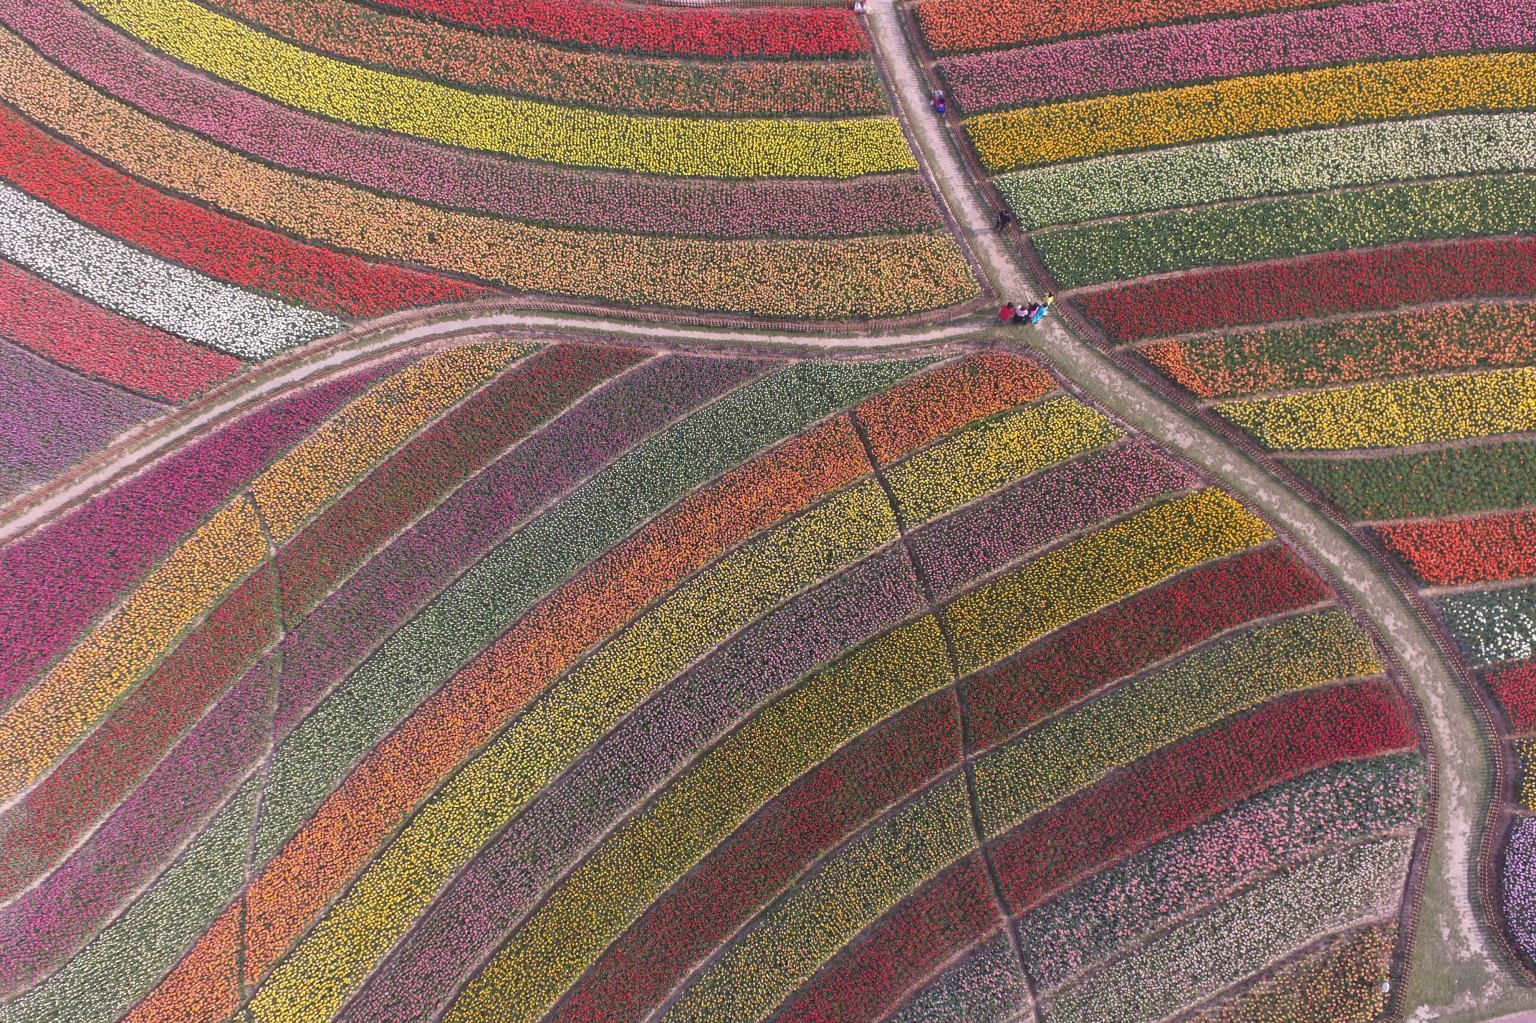 An aerial view shows some 30 million tulips made up of more than 300 varieties  April 17 at the tulip park of Dafeng district in Yancheng, Jiangsu Province of China. VCG via Getty Images